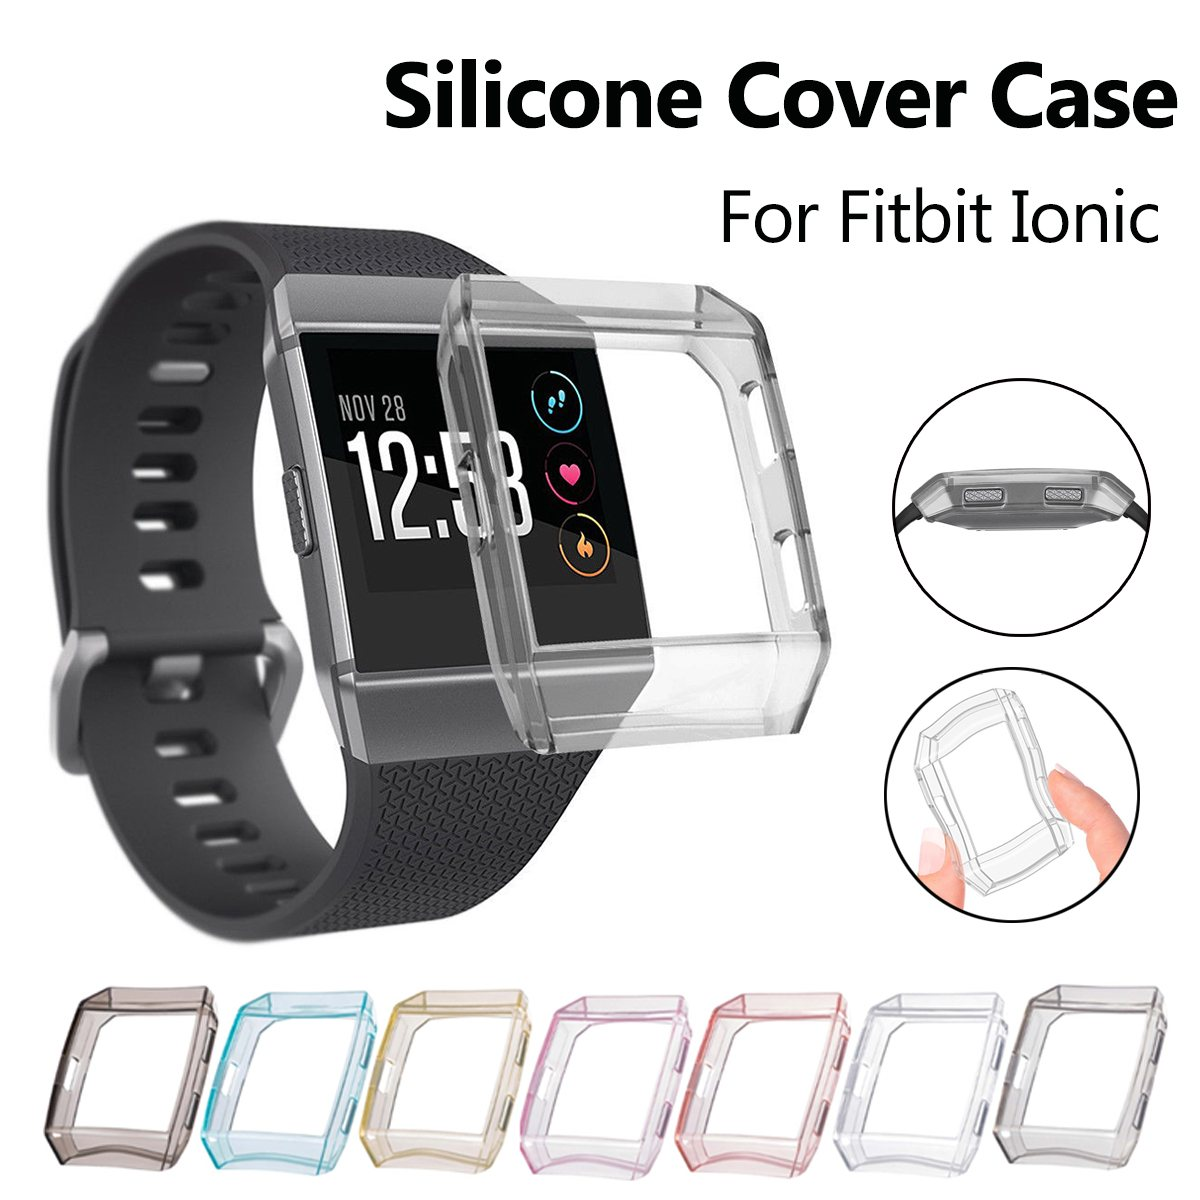 Multi Colors Silicone Frame Skin Cover Case Protective Guard Shell For Fitbit Ionic Smart Watch Band Screen Protector стоимость